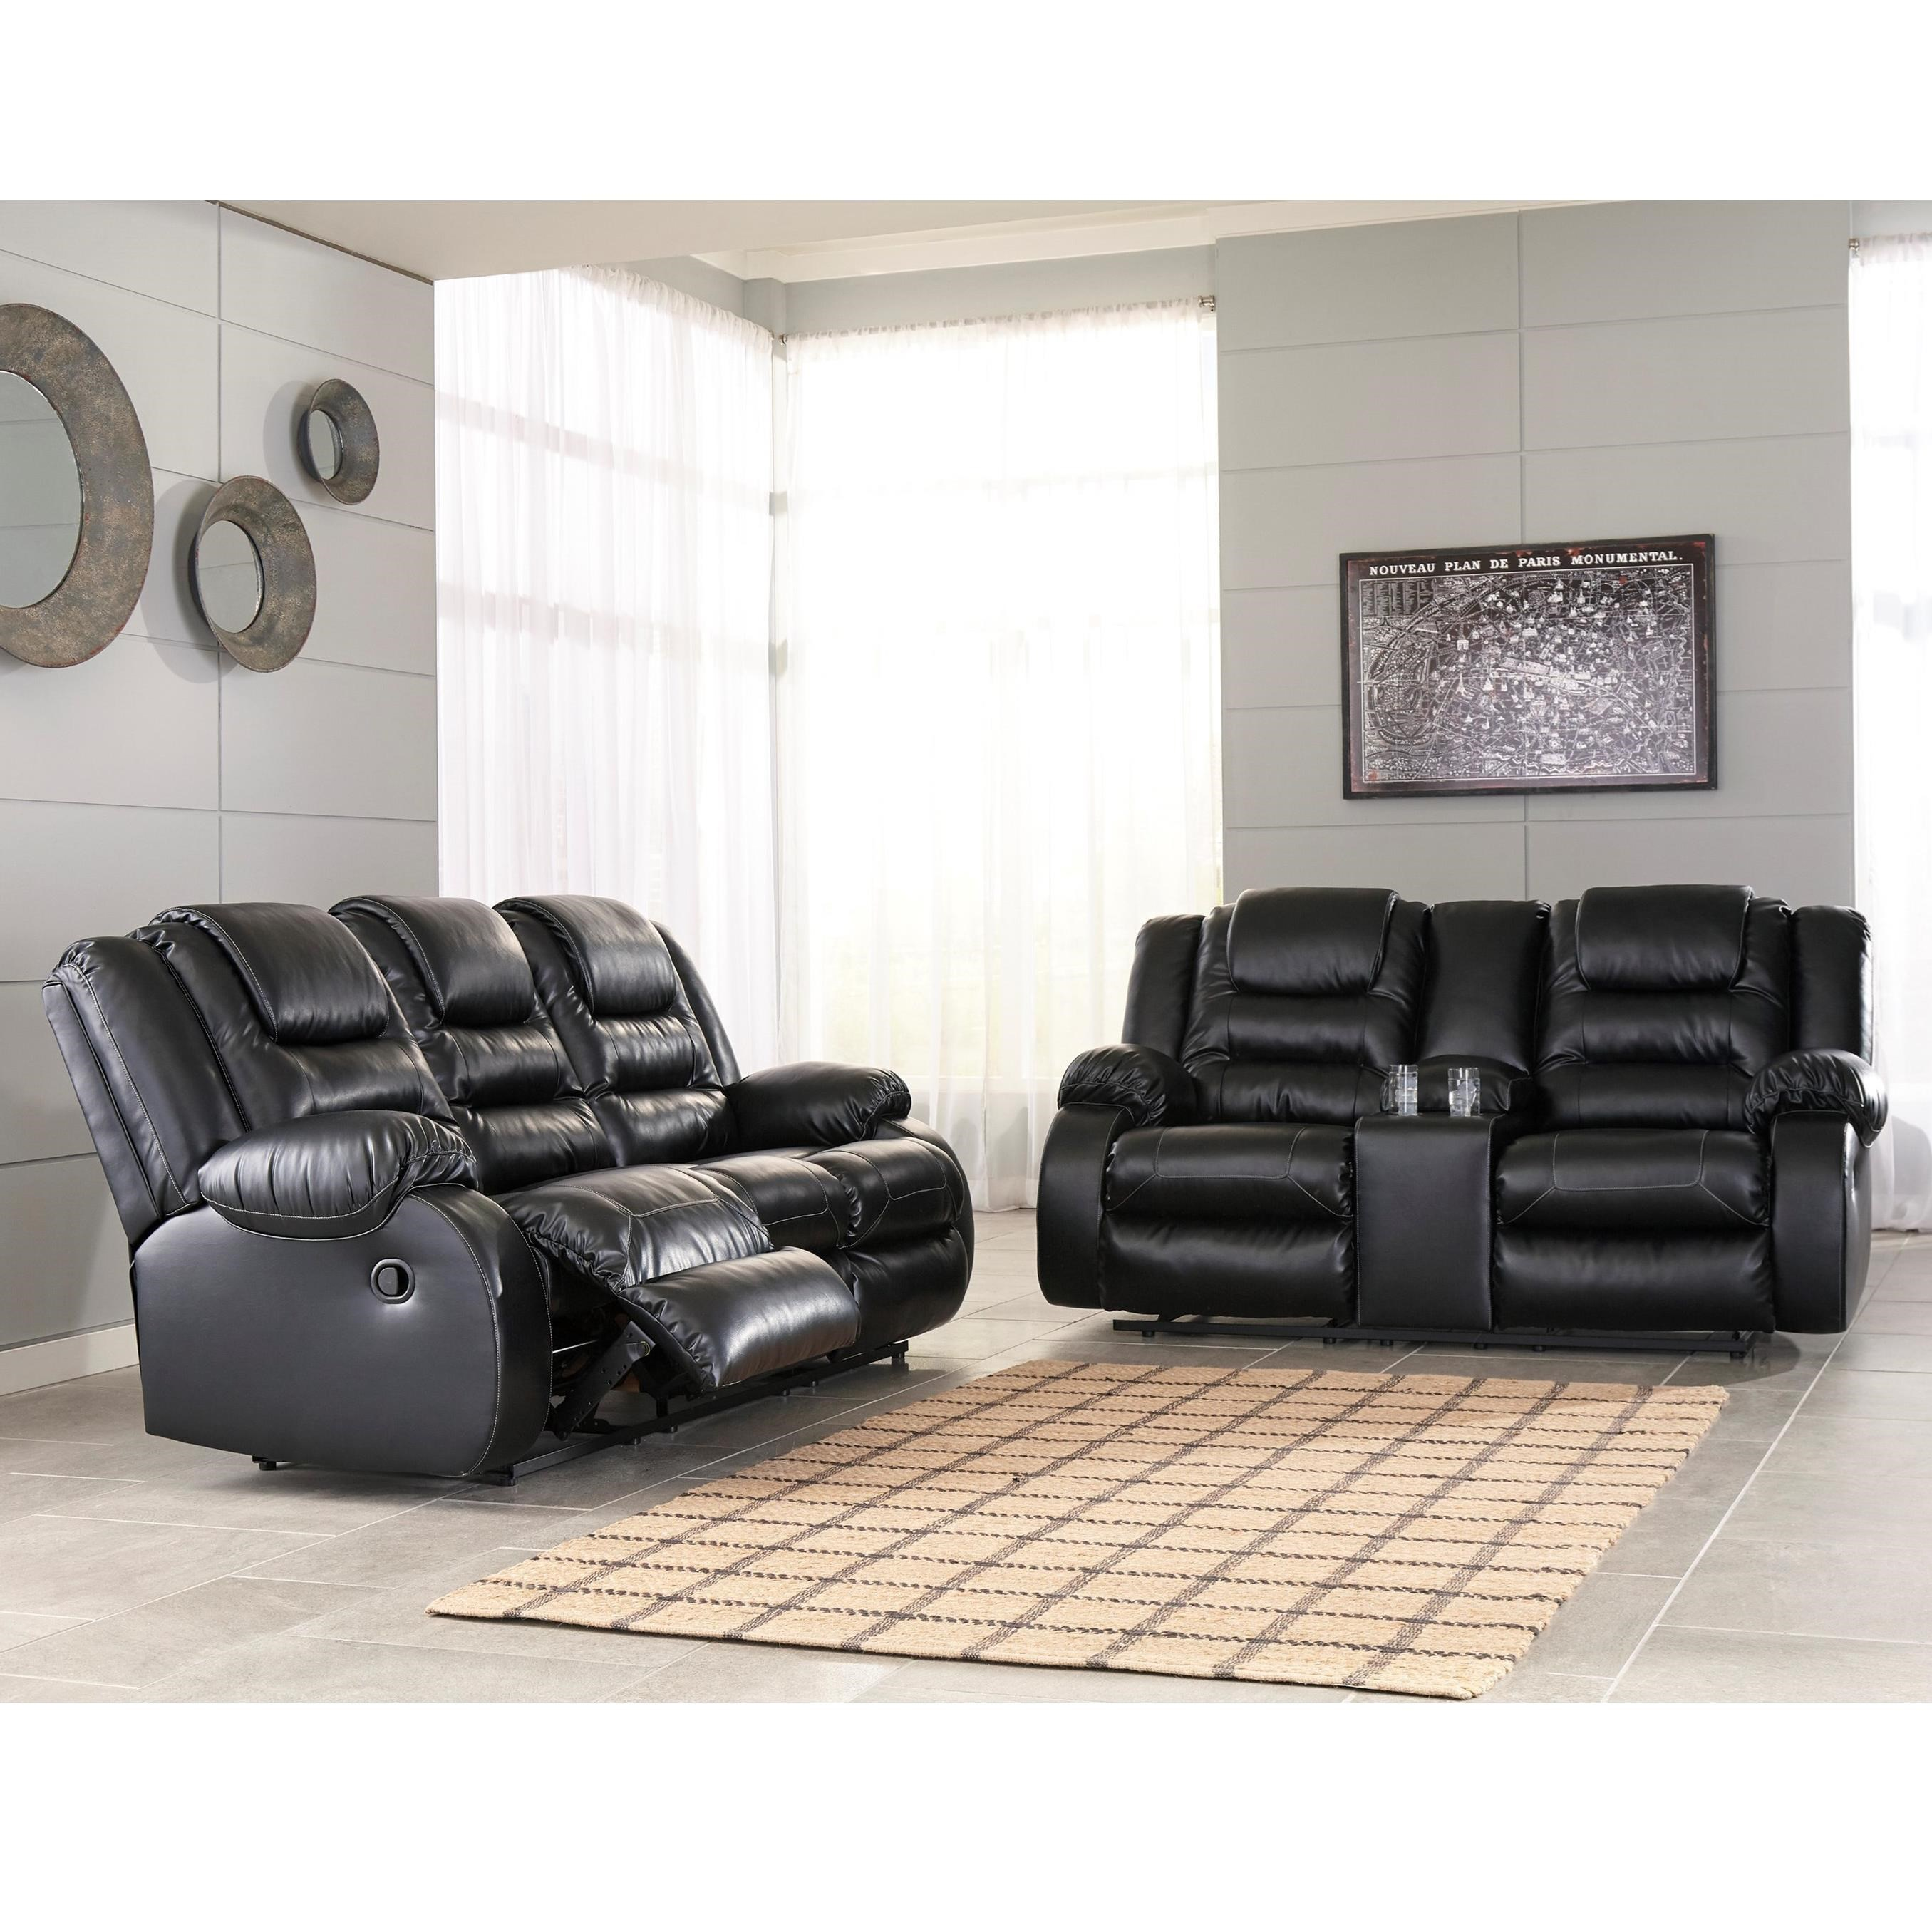 Signature Design by Ashley Vacherie Reclining Living Room Group ...